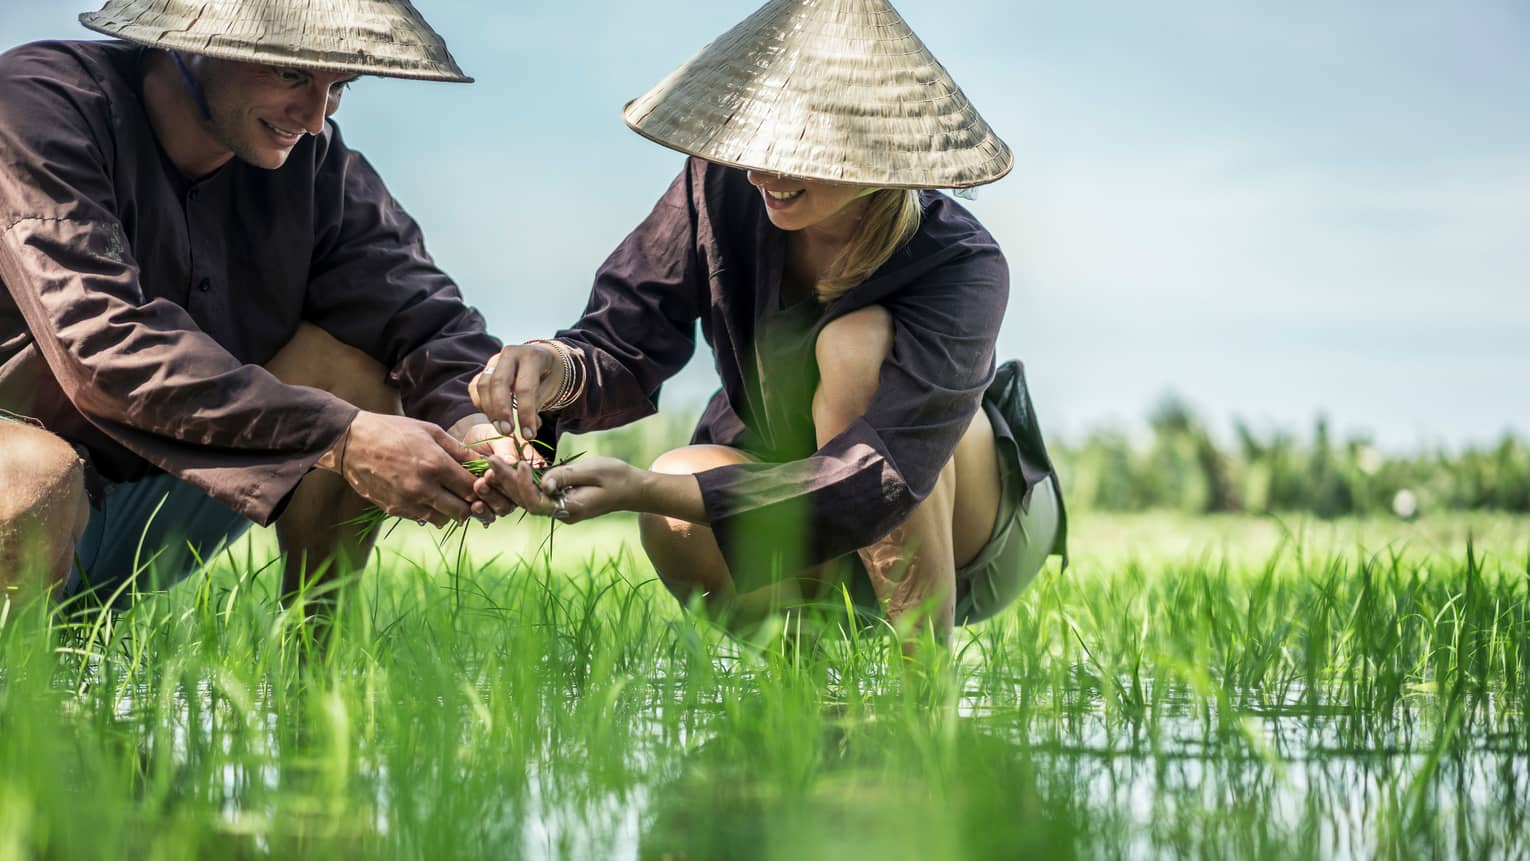 Couple wearing traditional farmer hats plant rice seedlings in water, grass